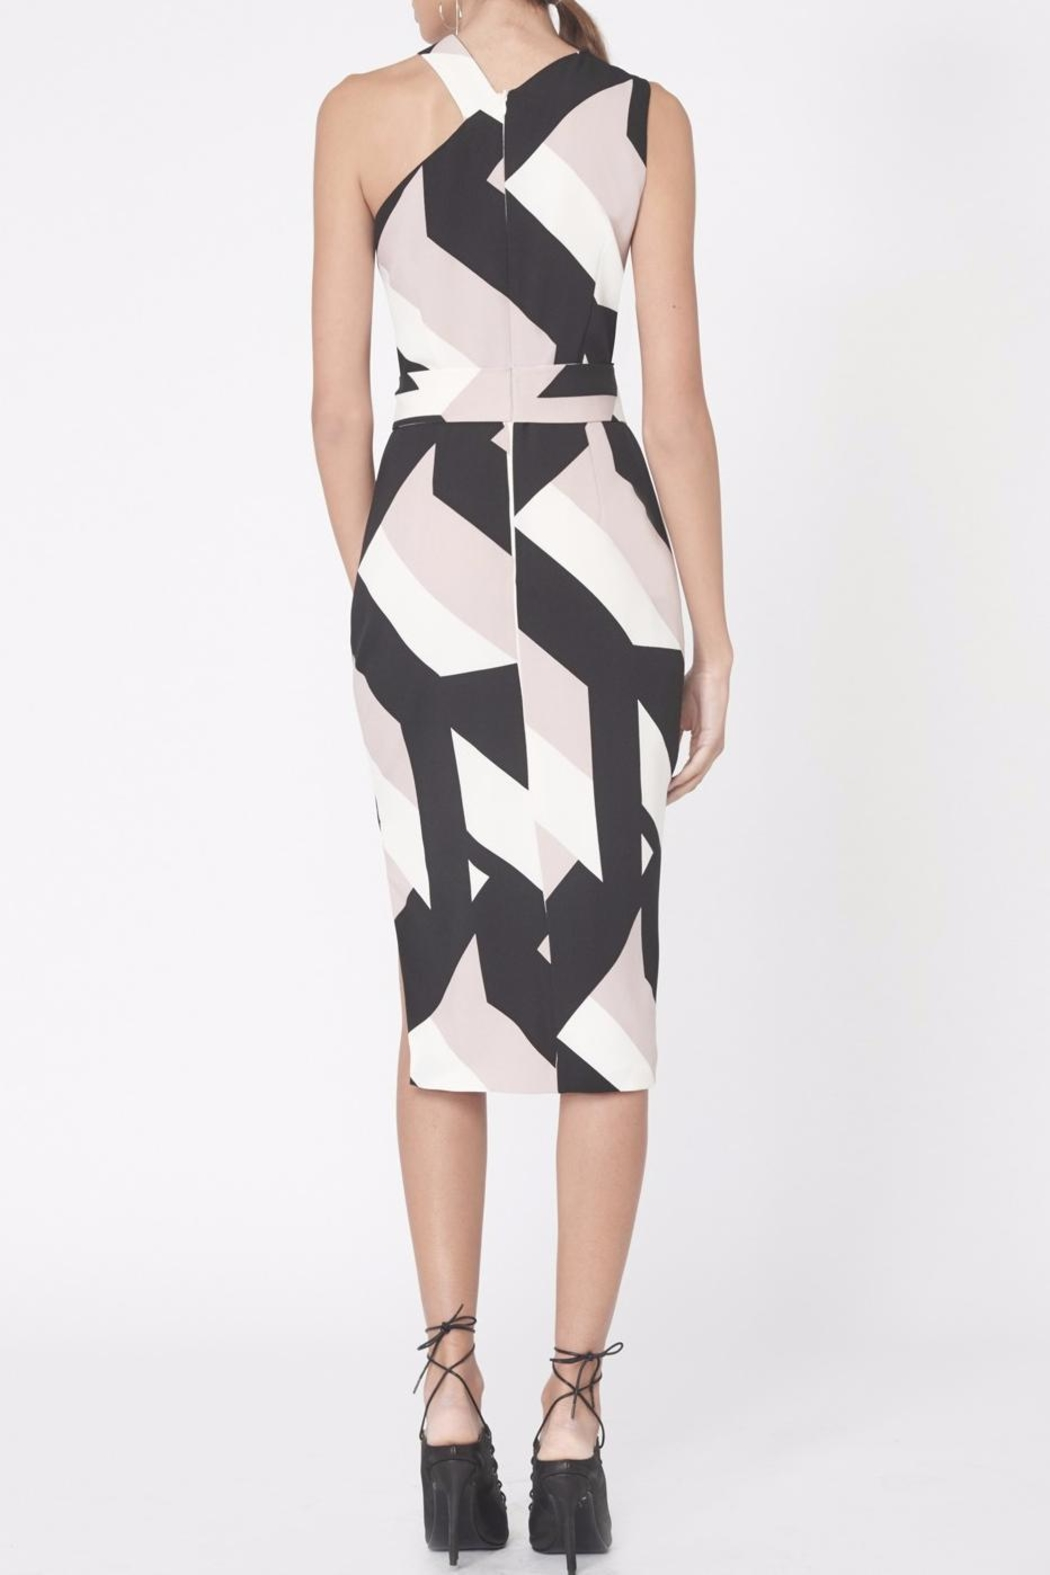 LAVISH ALICE Abstract Print Asymmetric Dress - Back Cropped Image